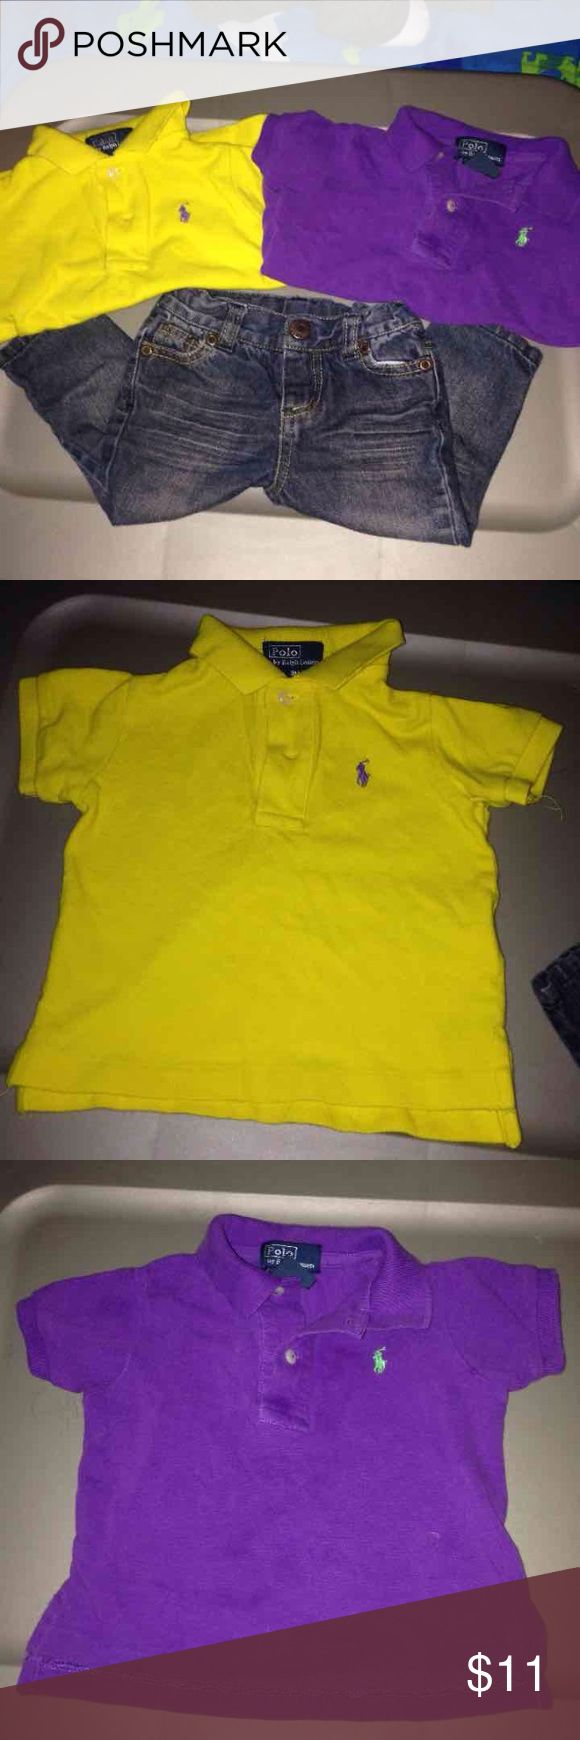 Boys 9 mo Purple and yellow polo shirts and free skinny jeans Ralph Lauren Shirts & Tops Polos